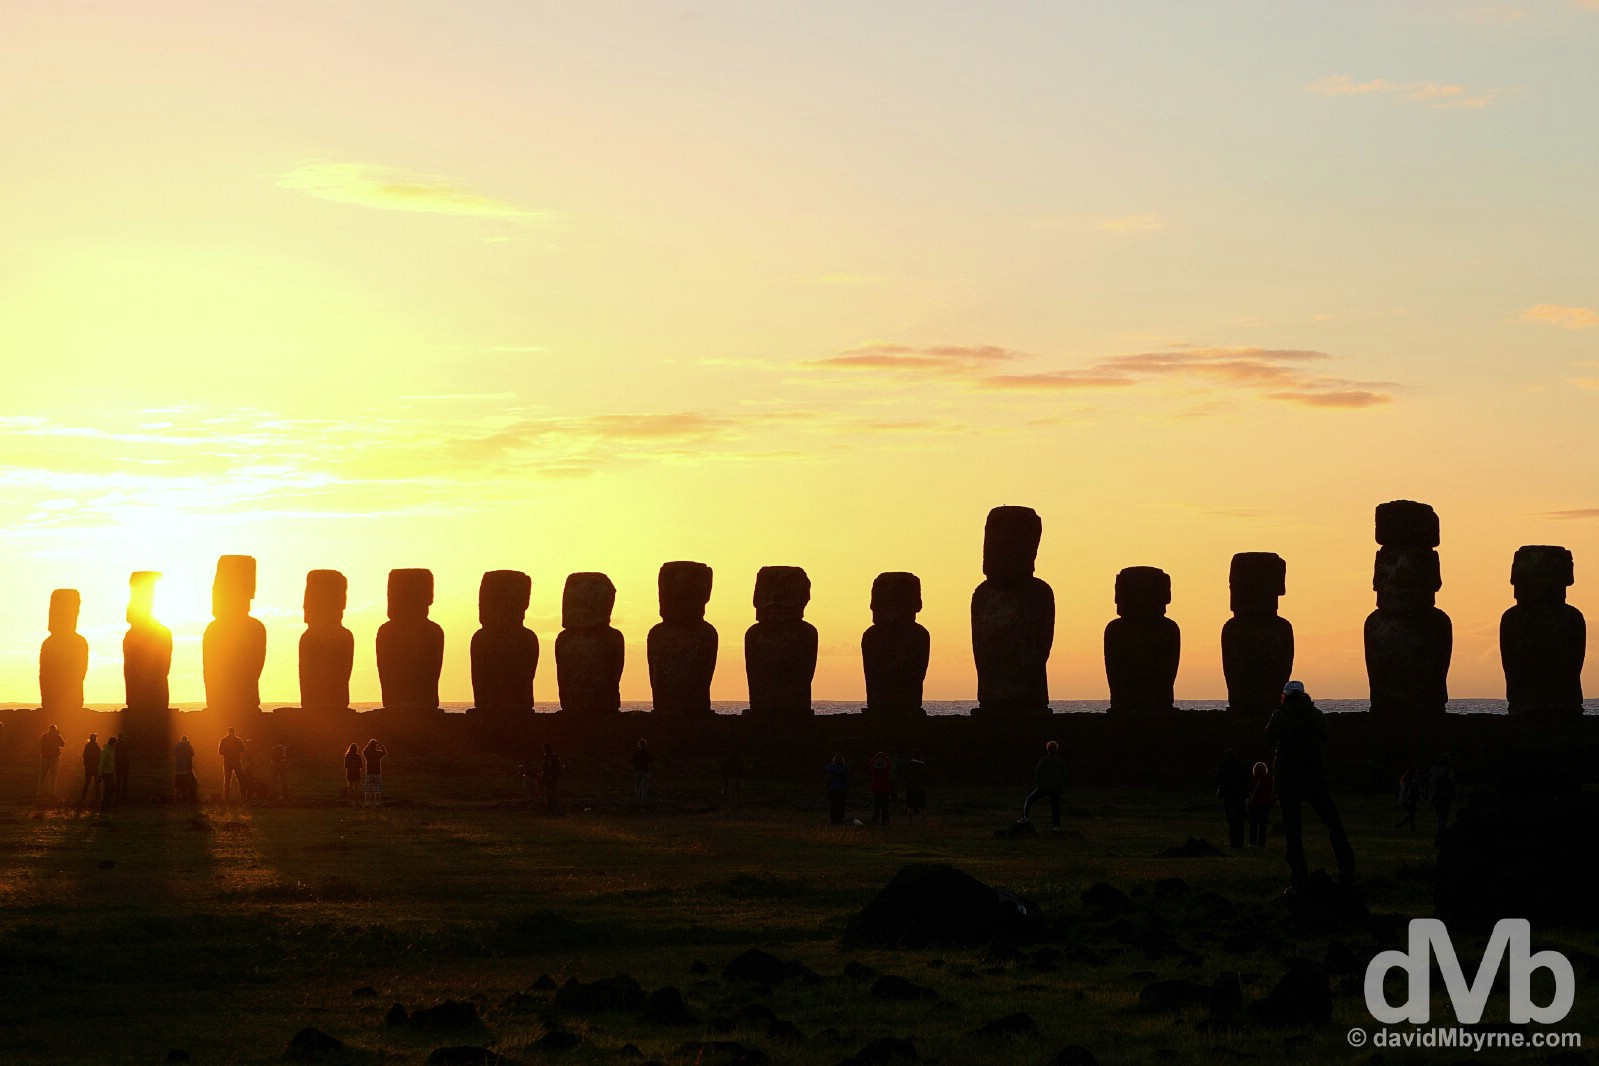 Sunrise at Ahu Tongariki, Easter Island, Chile. October 3, 2015.